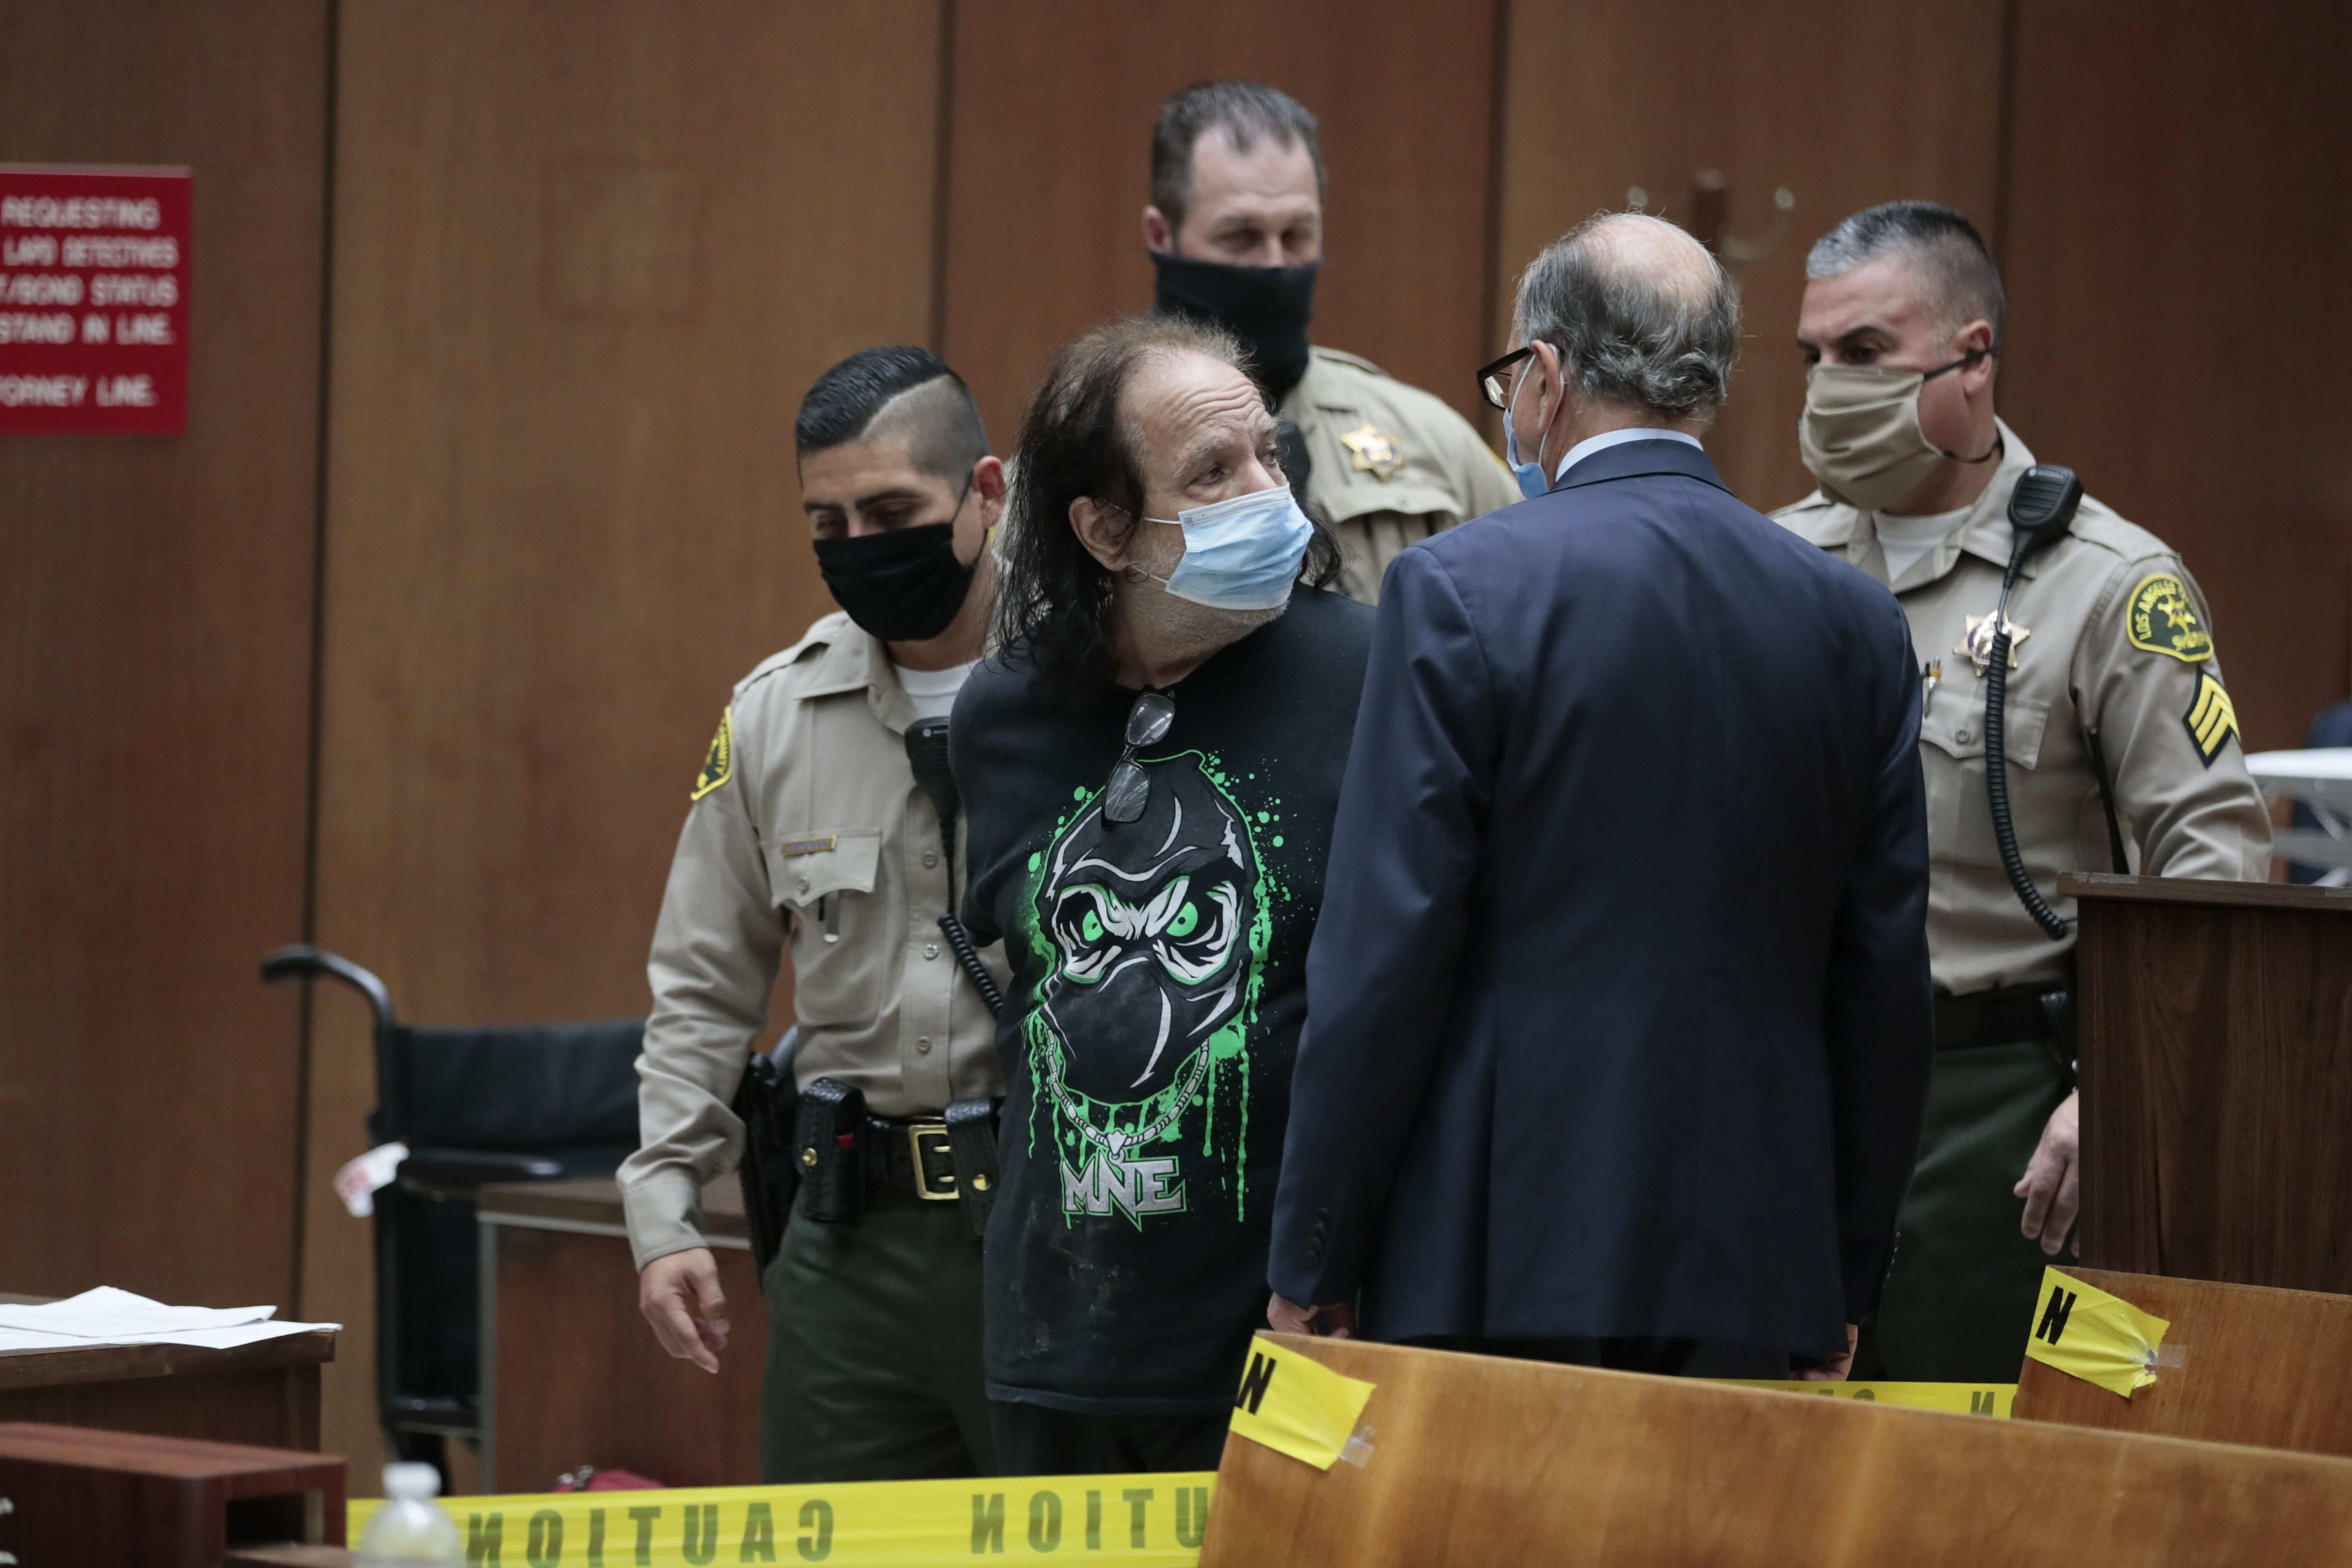 Adult film star Ron Jeremy (C) makes his first appearance in downtown Los Angeles Criminal Court, June 23, 2020. - Adult film star Ron Jeremy has been charged with raping three women and sexually assaulting a fourth, Los Angeles prosecutors said Tuesday. (Photo by ROBERT GAUTHIER/POOL/AFP via Getty Images)